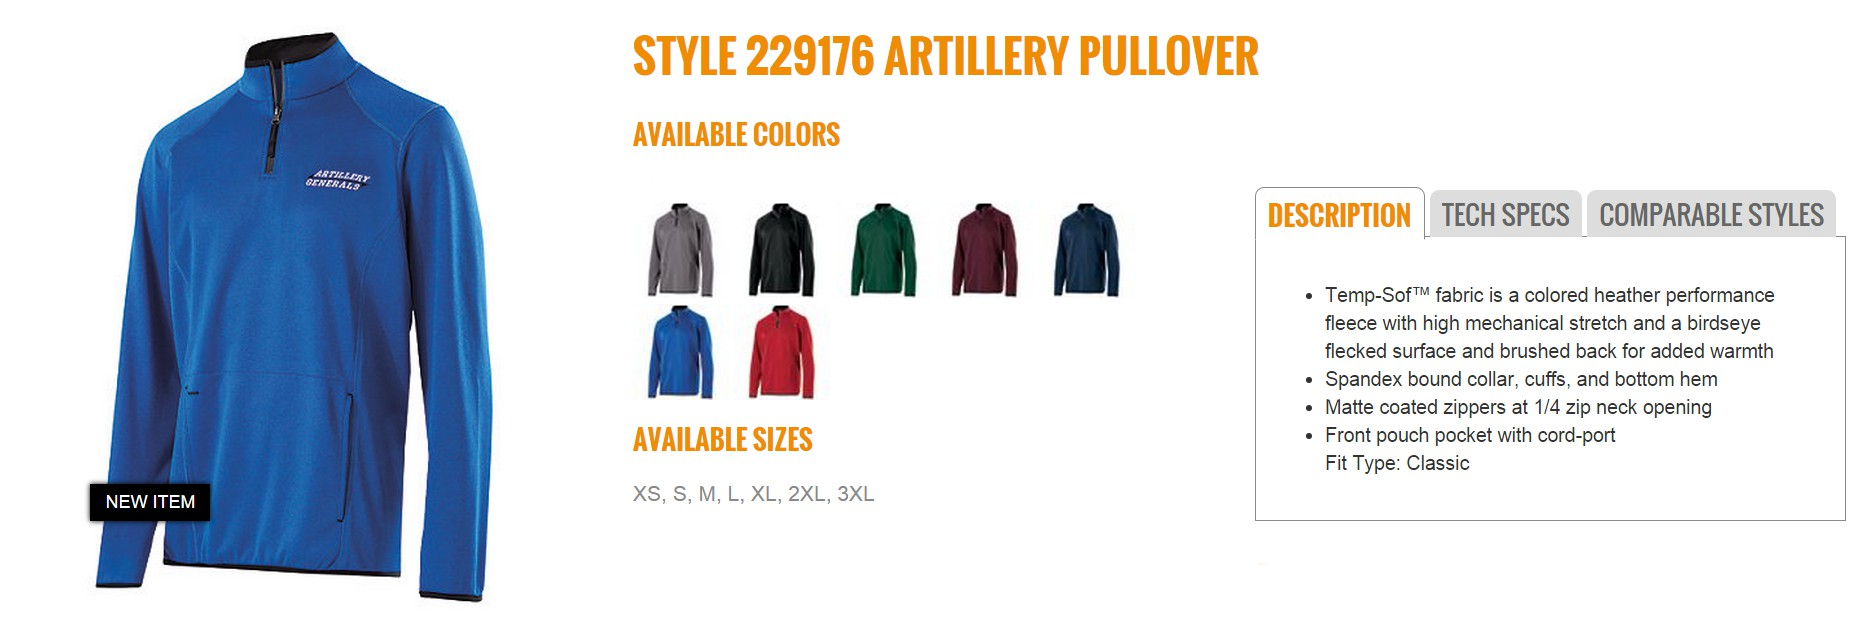 Group Fundraising Store Apparel Fundraising Holloway Artillery Pullover 229176